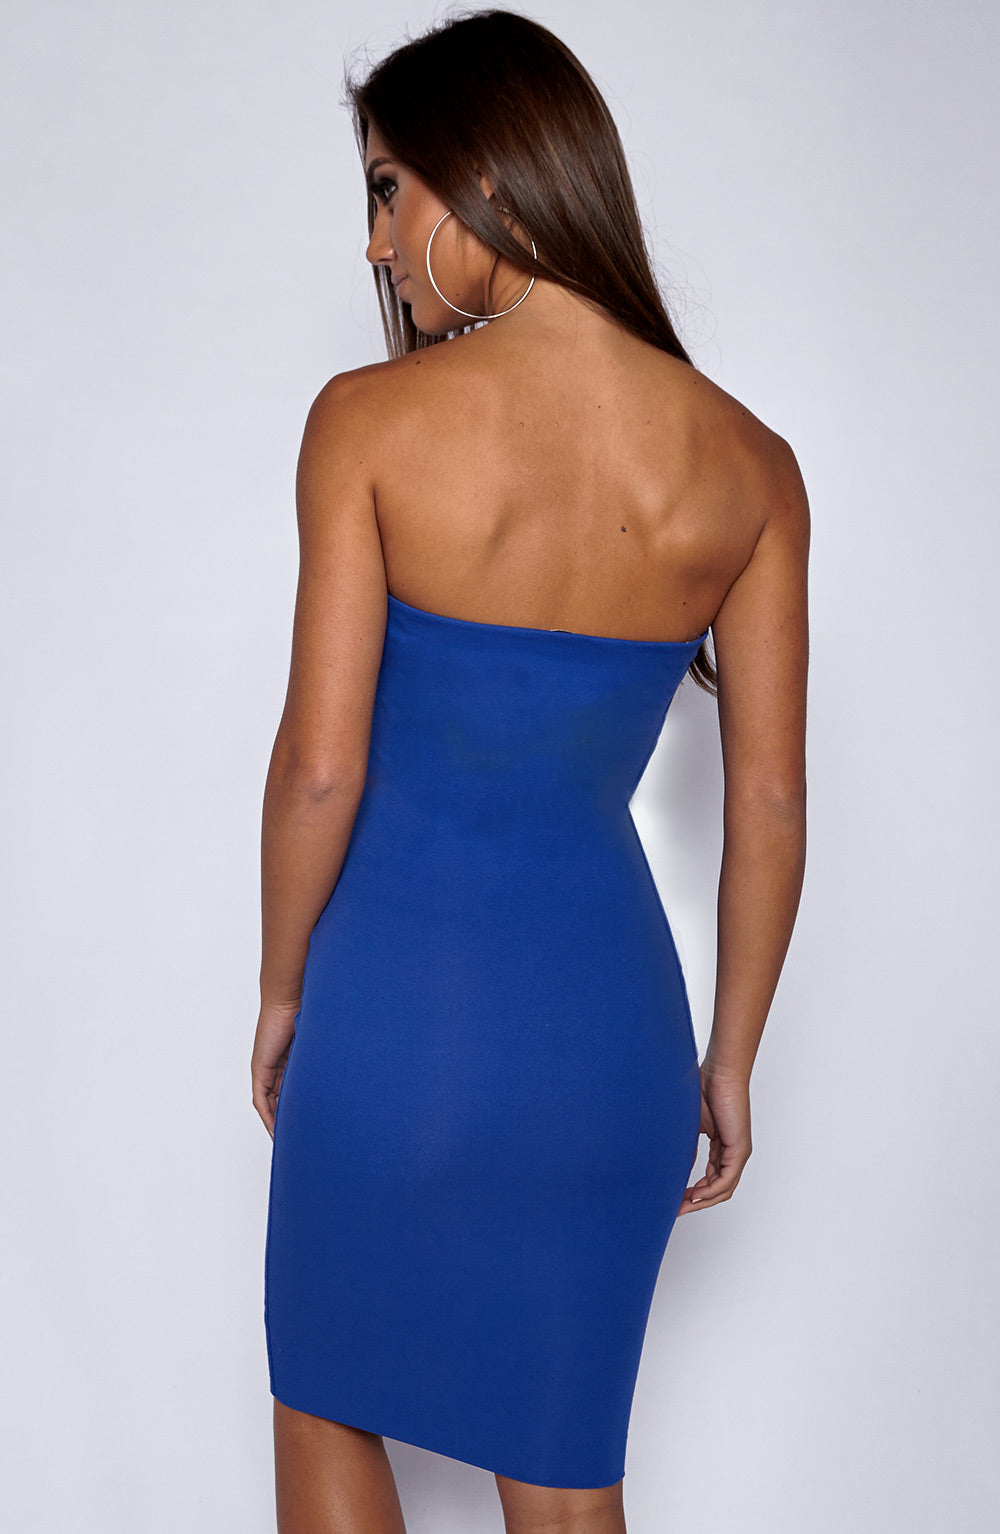 Zaria Dress - Royal Blue